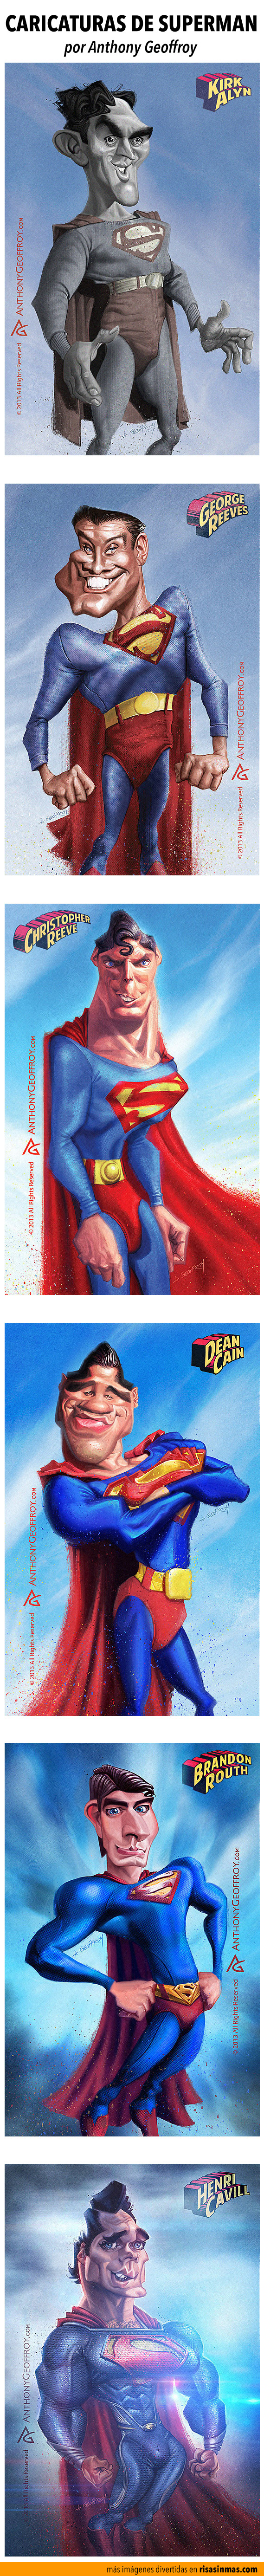 Caricaturas de cada actor de Superman